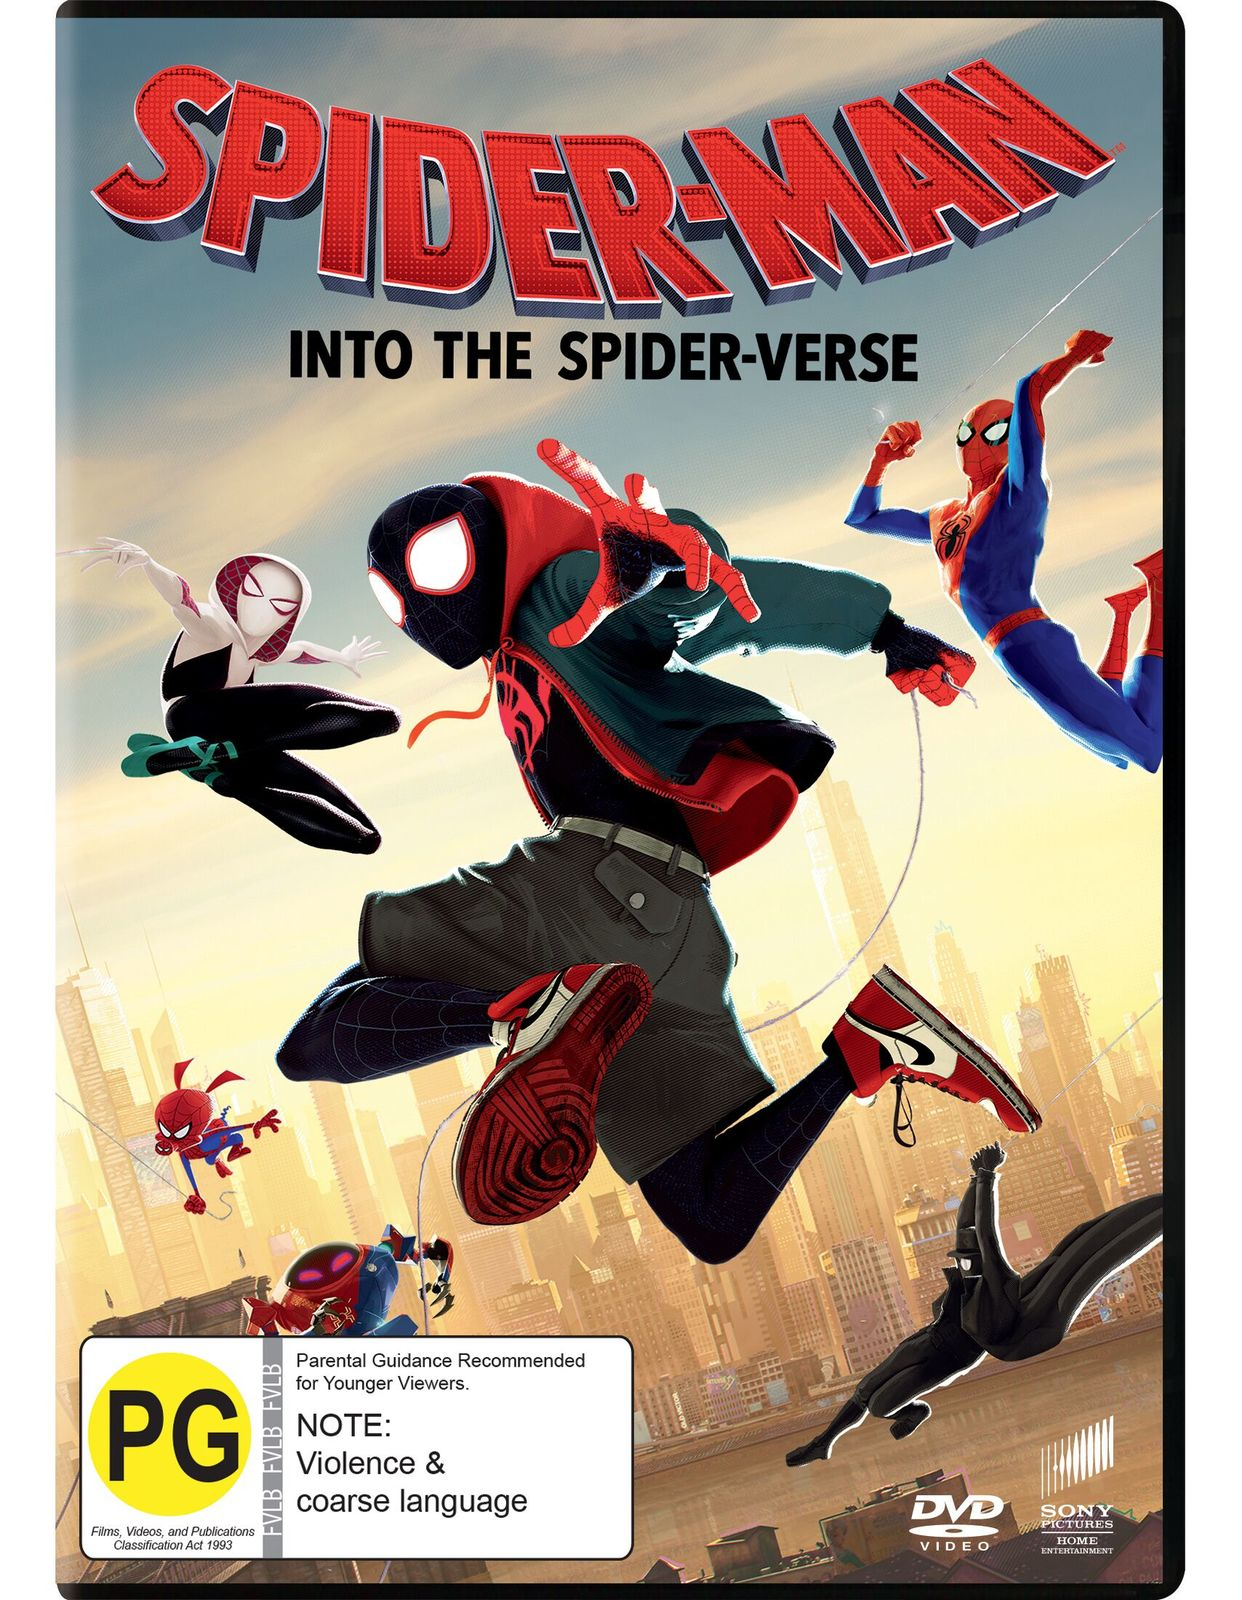 Spider-Man: Into the Spider-Verse on DVD image